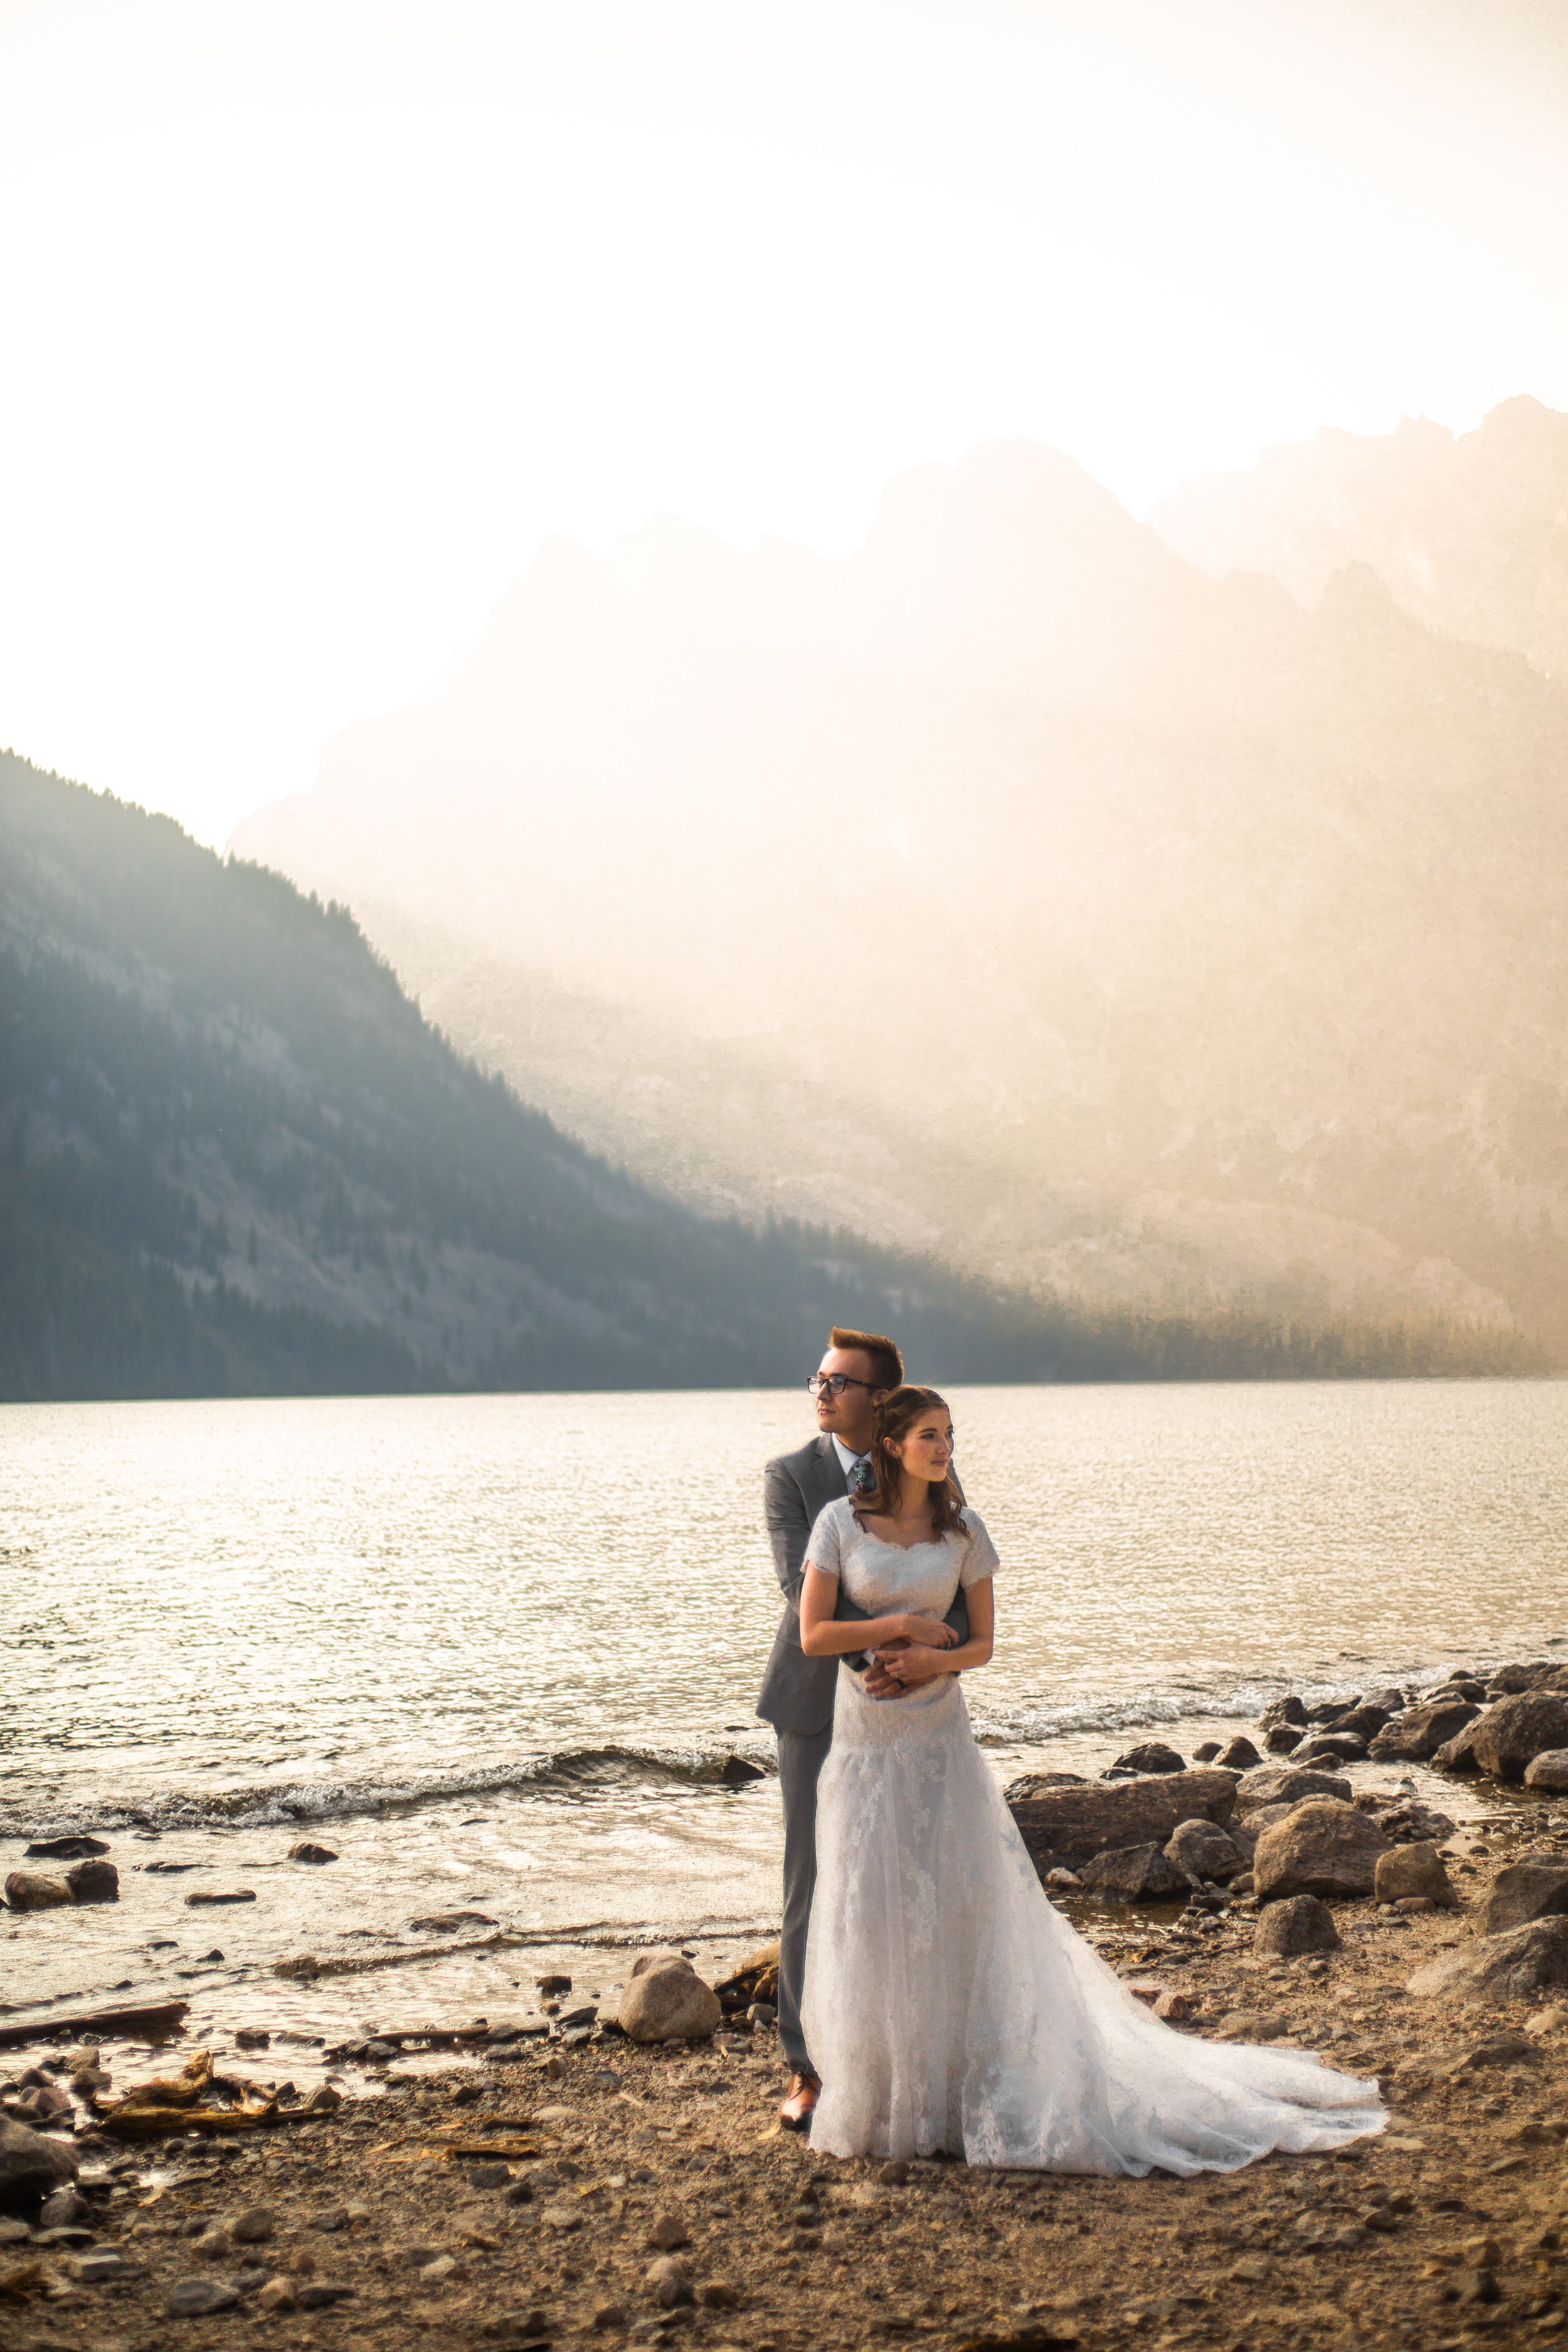 Grand-Teton-National-Park-Bridal-Session24.jpg